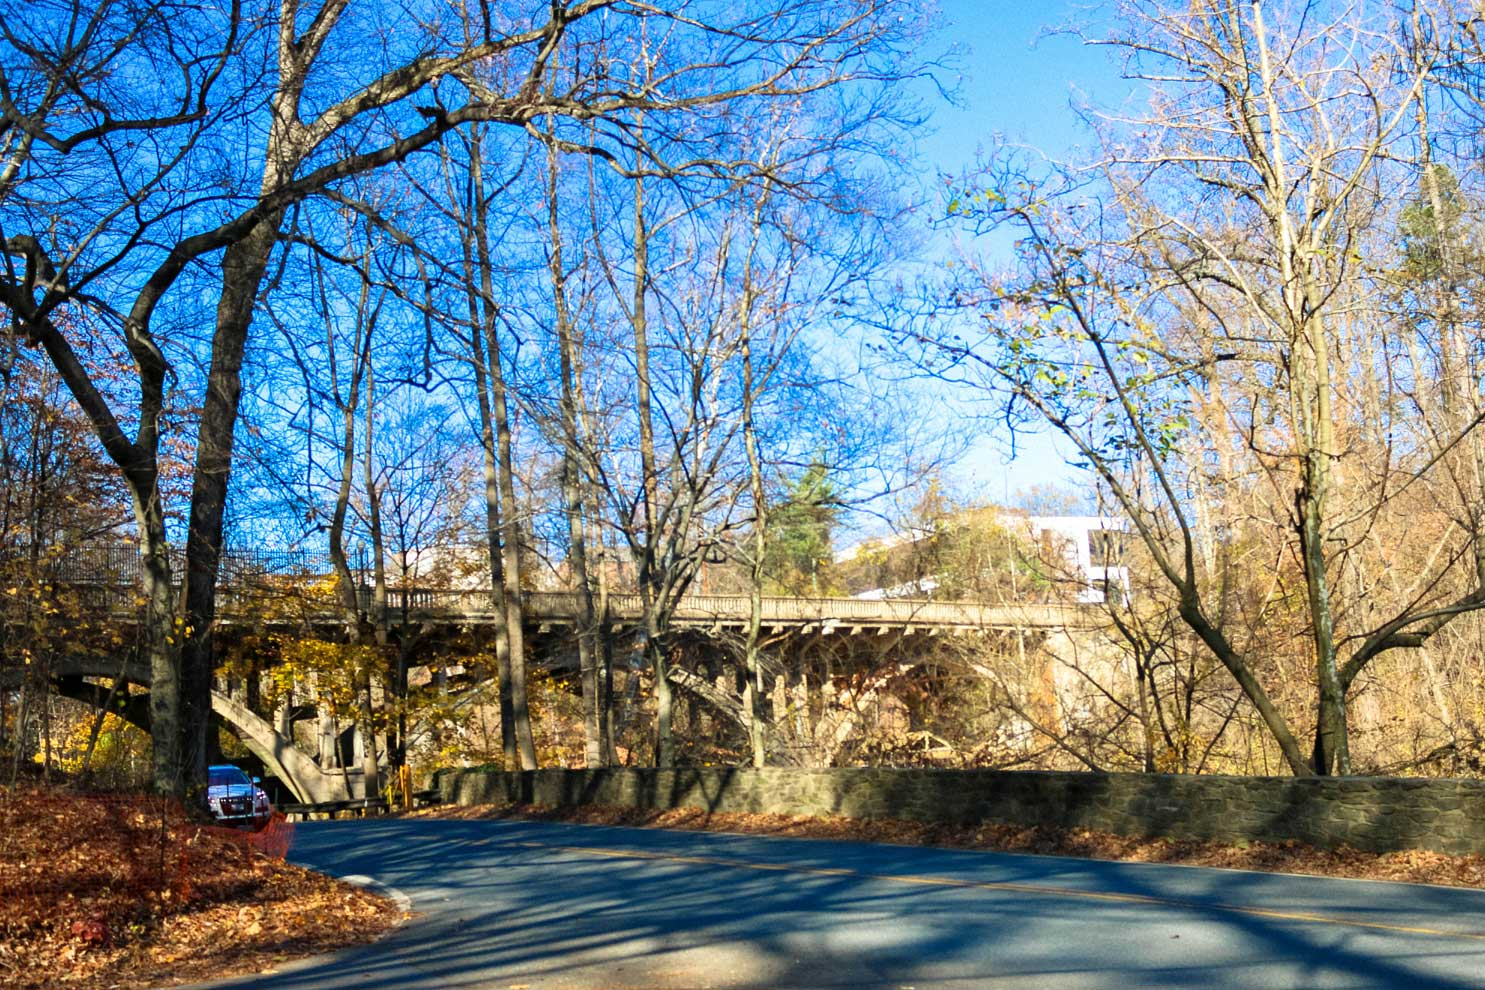 Bridge over road in Takoma Park, MD